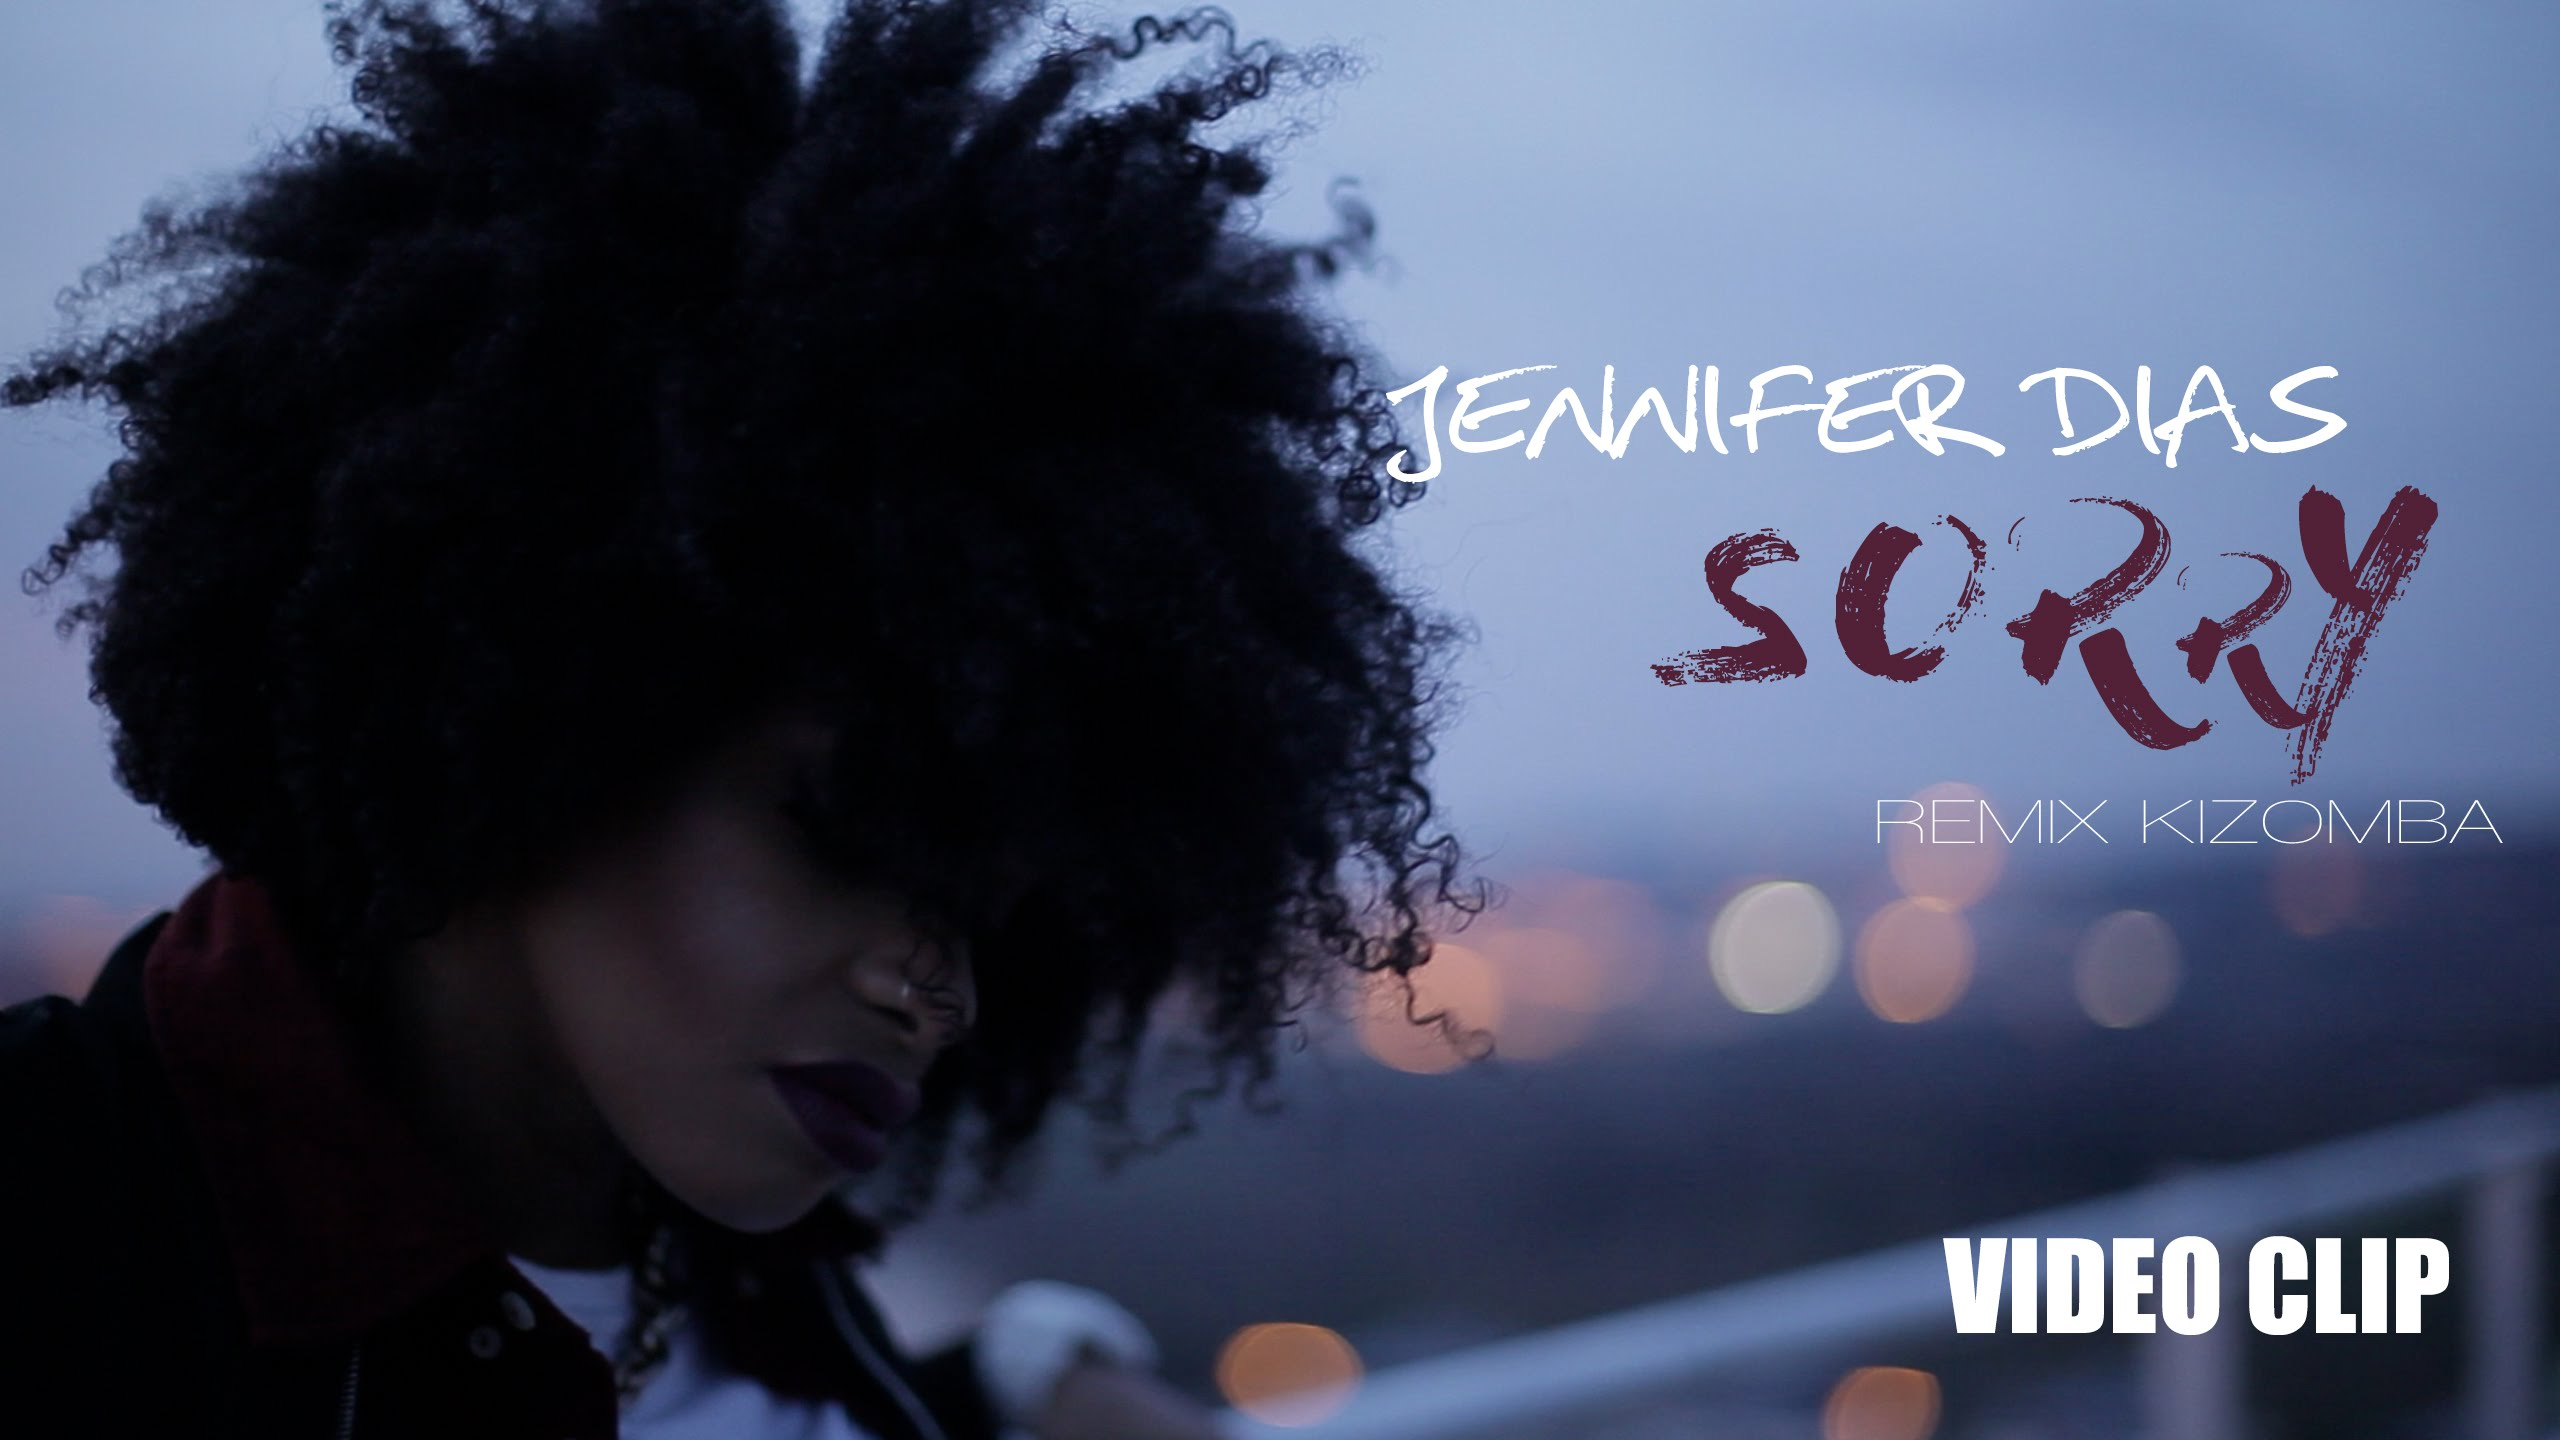 Jennifer Dias – Sorry Remix Kizomba